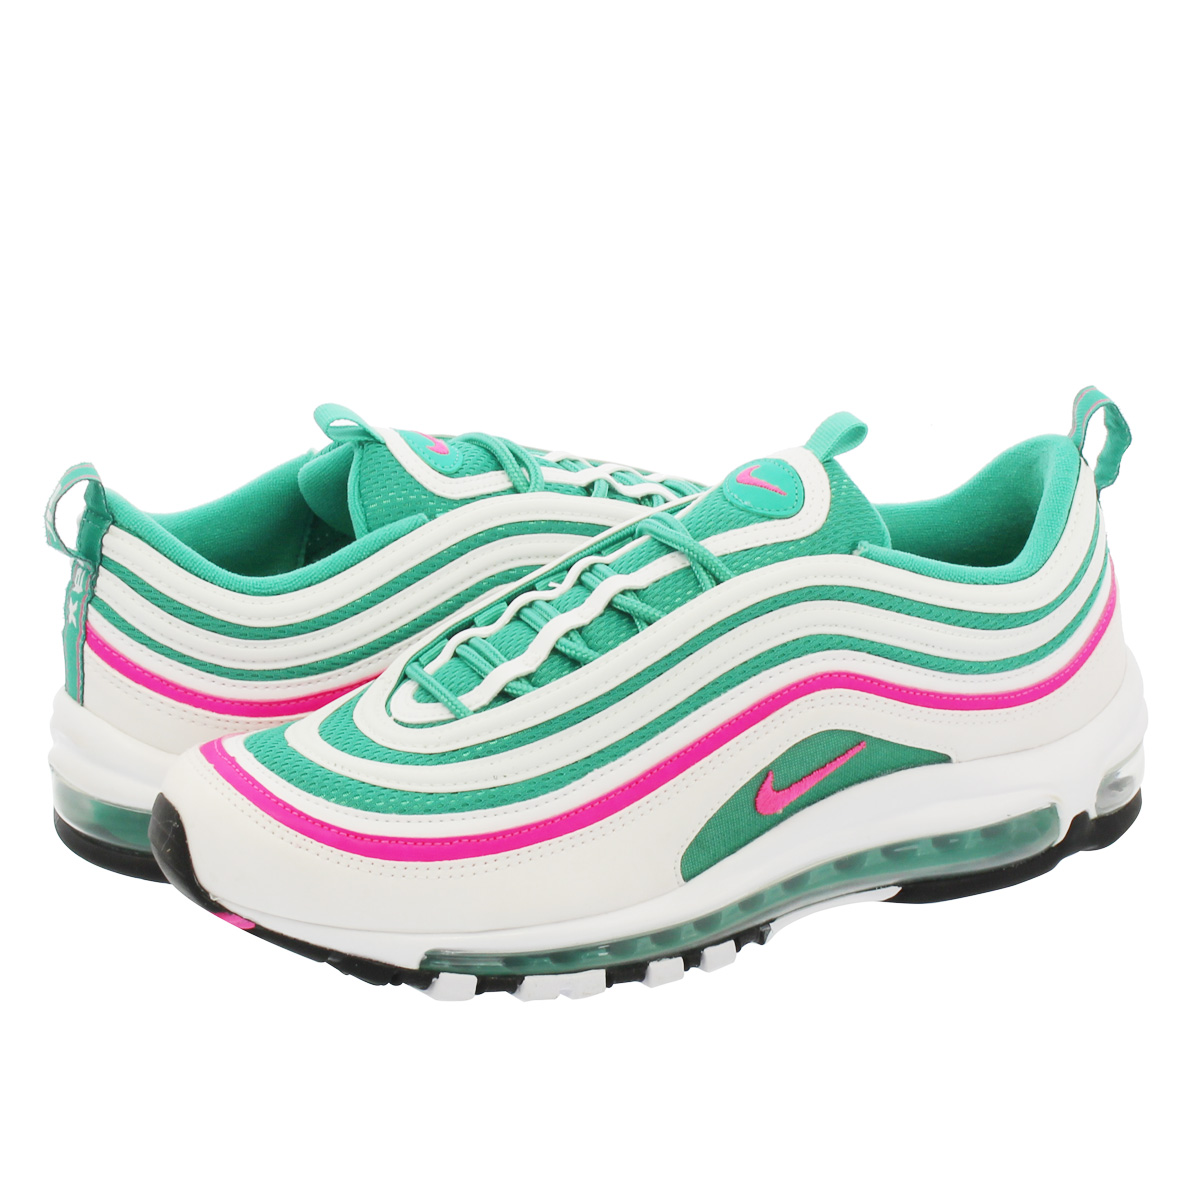 new arrival 40e00 2c568 NIKE AIR MAX 97 Kie Ney AMAX 97 WHITE PINK BLAST KINETIC GREEN BLACK.  Contact Shop